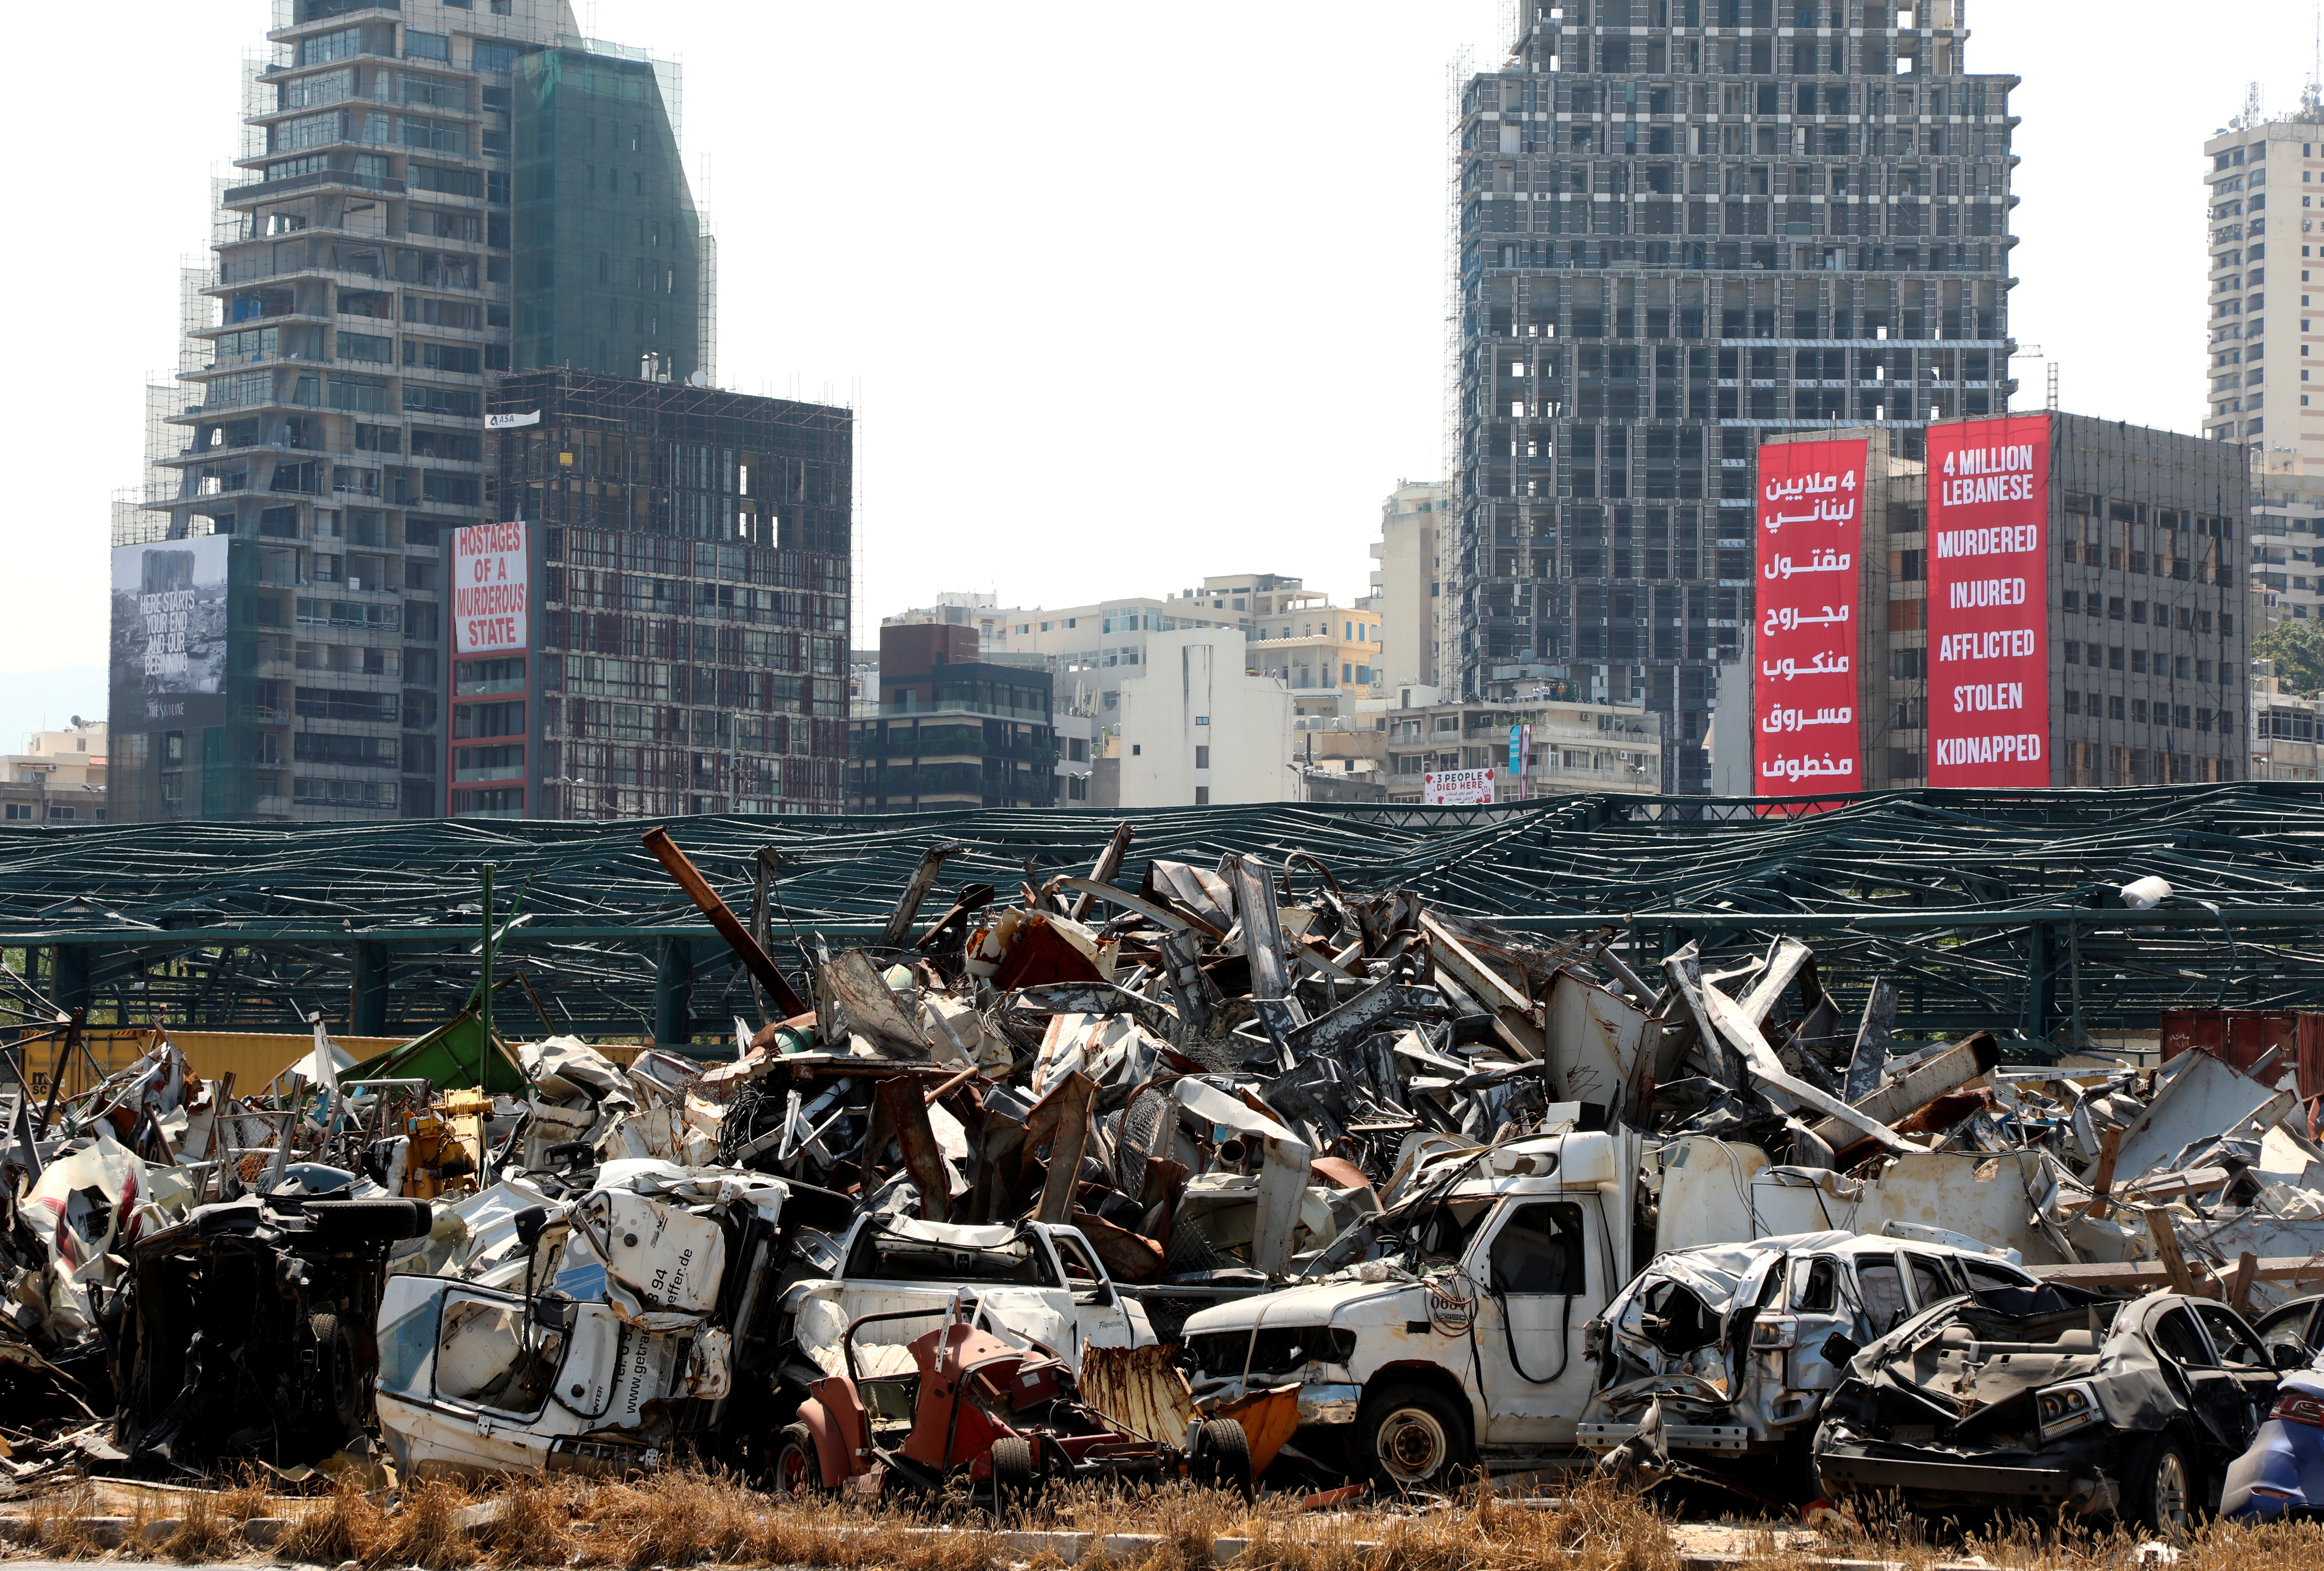 A view shows damaged cars from last year's Beirut port blast as Lebanon marks the one-year anniversary of Beirut port explosion, inside Beirut port, Lebanon August 4, 2021. REUTERS/Mohamed Azakir